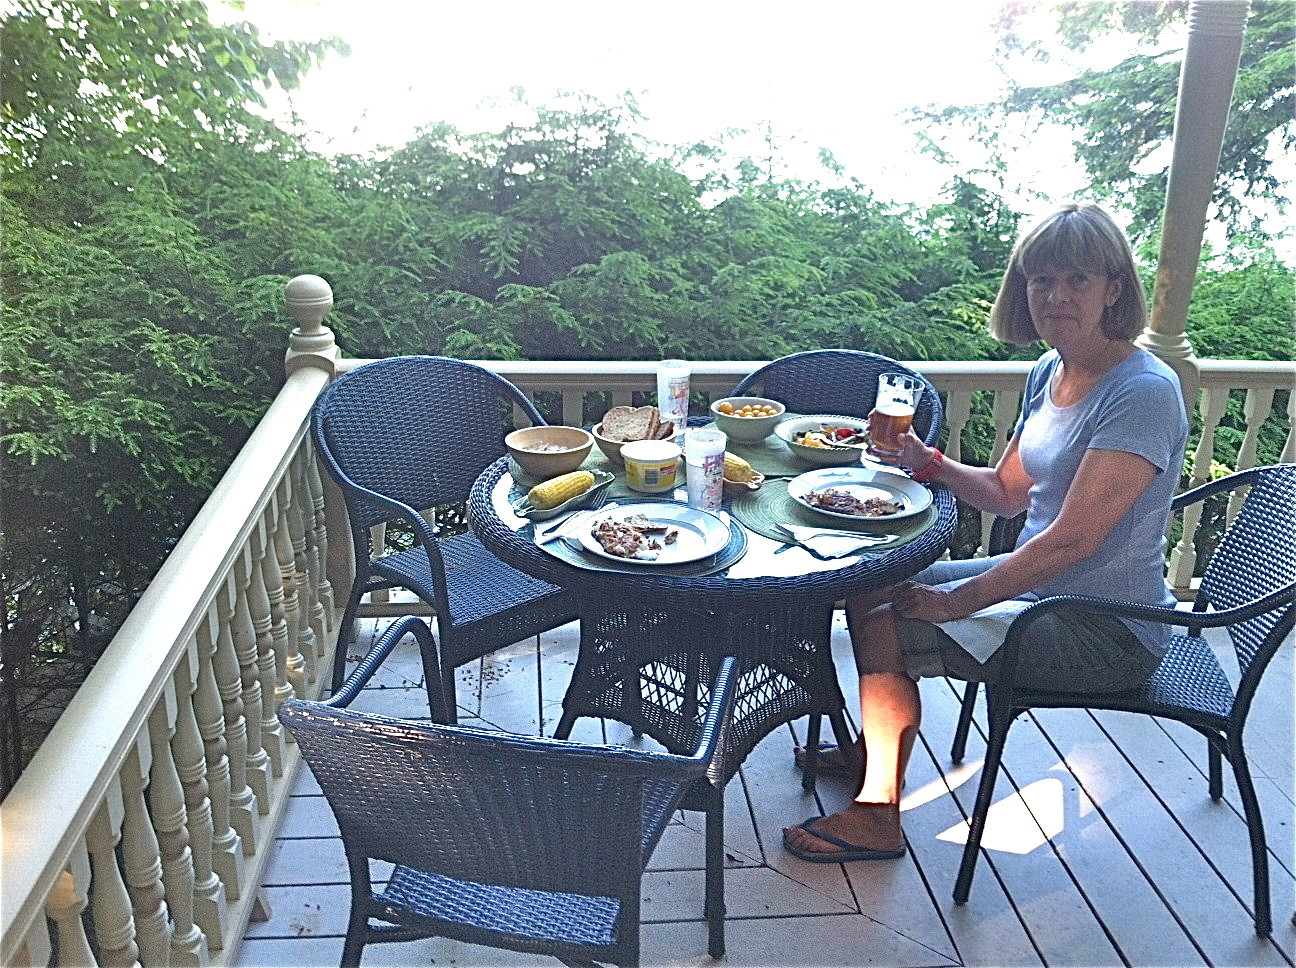 Nancy on the porch having dinner...